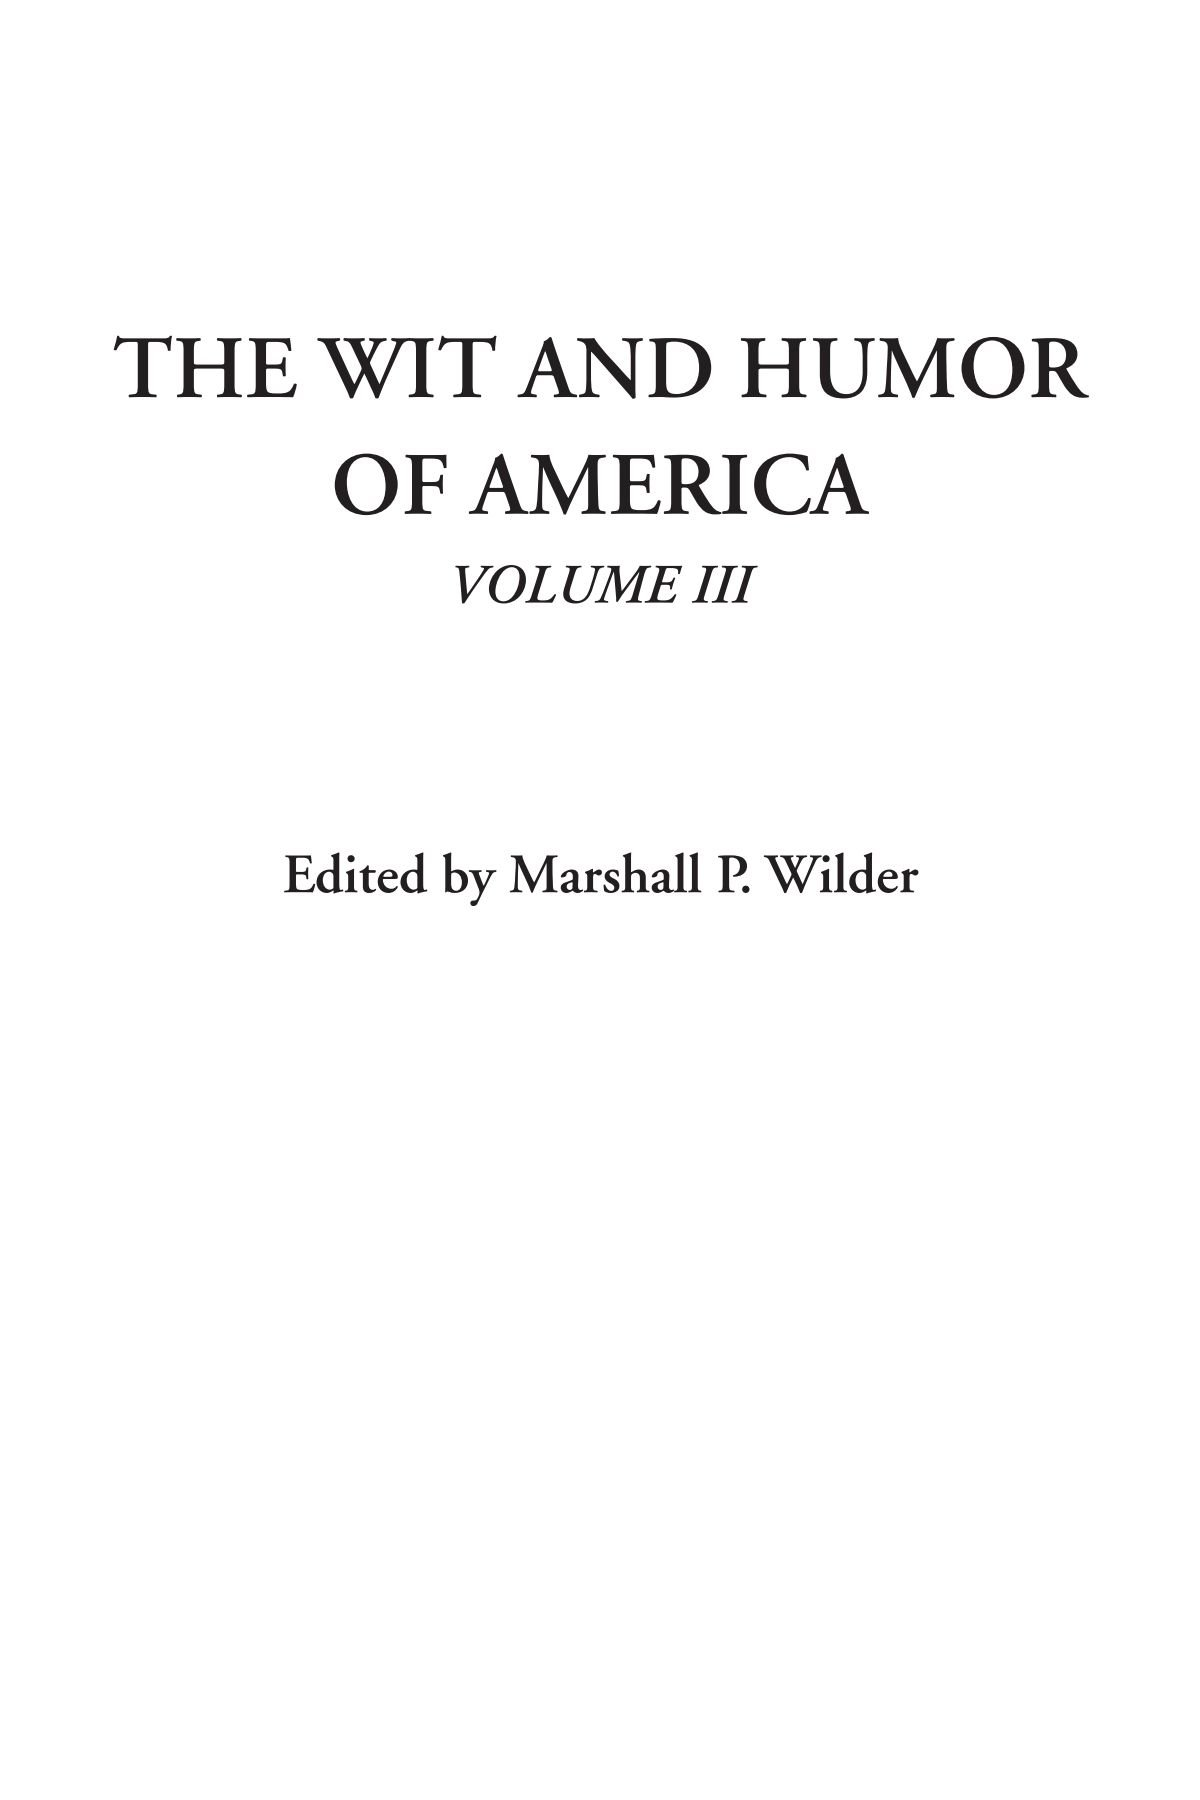 The Wit and Humor of America, Volume III PDF